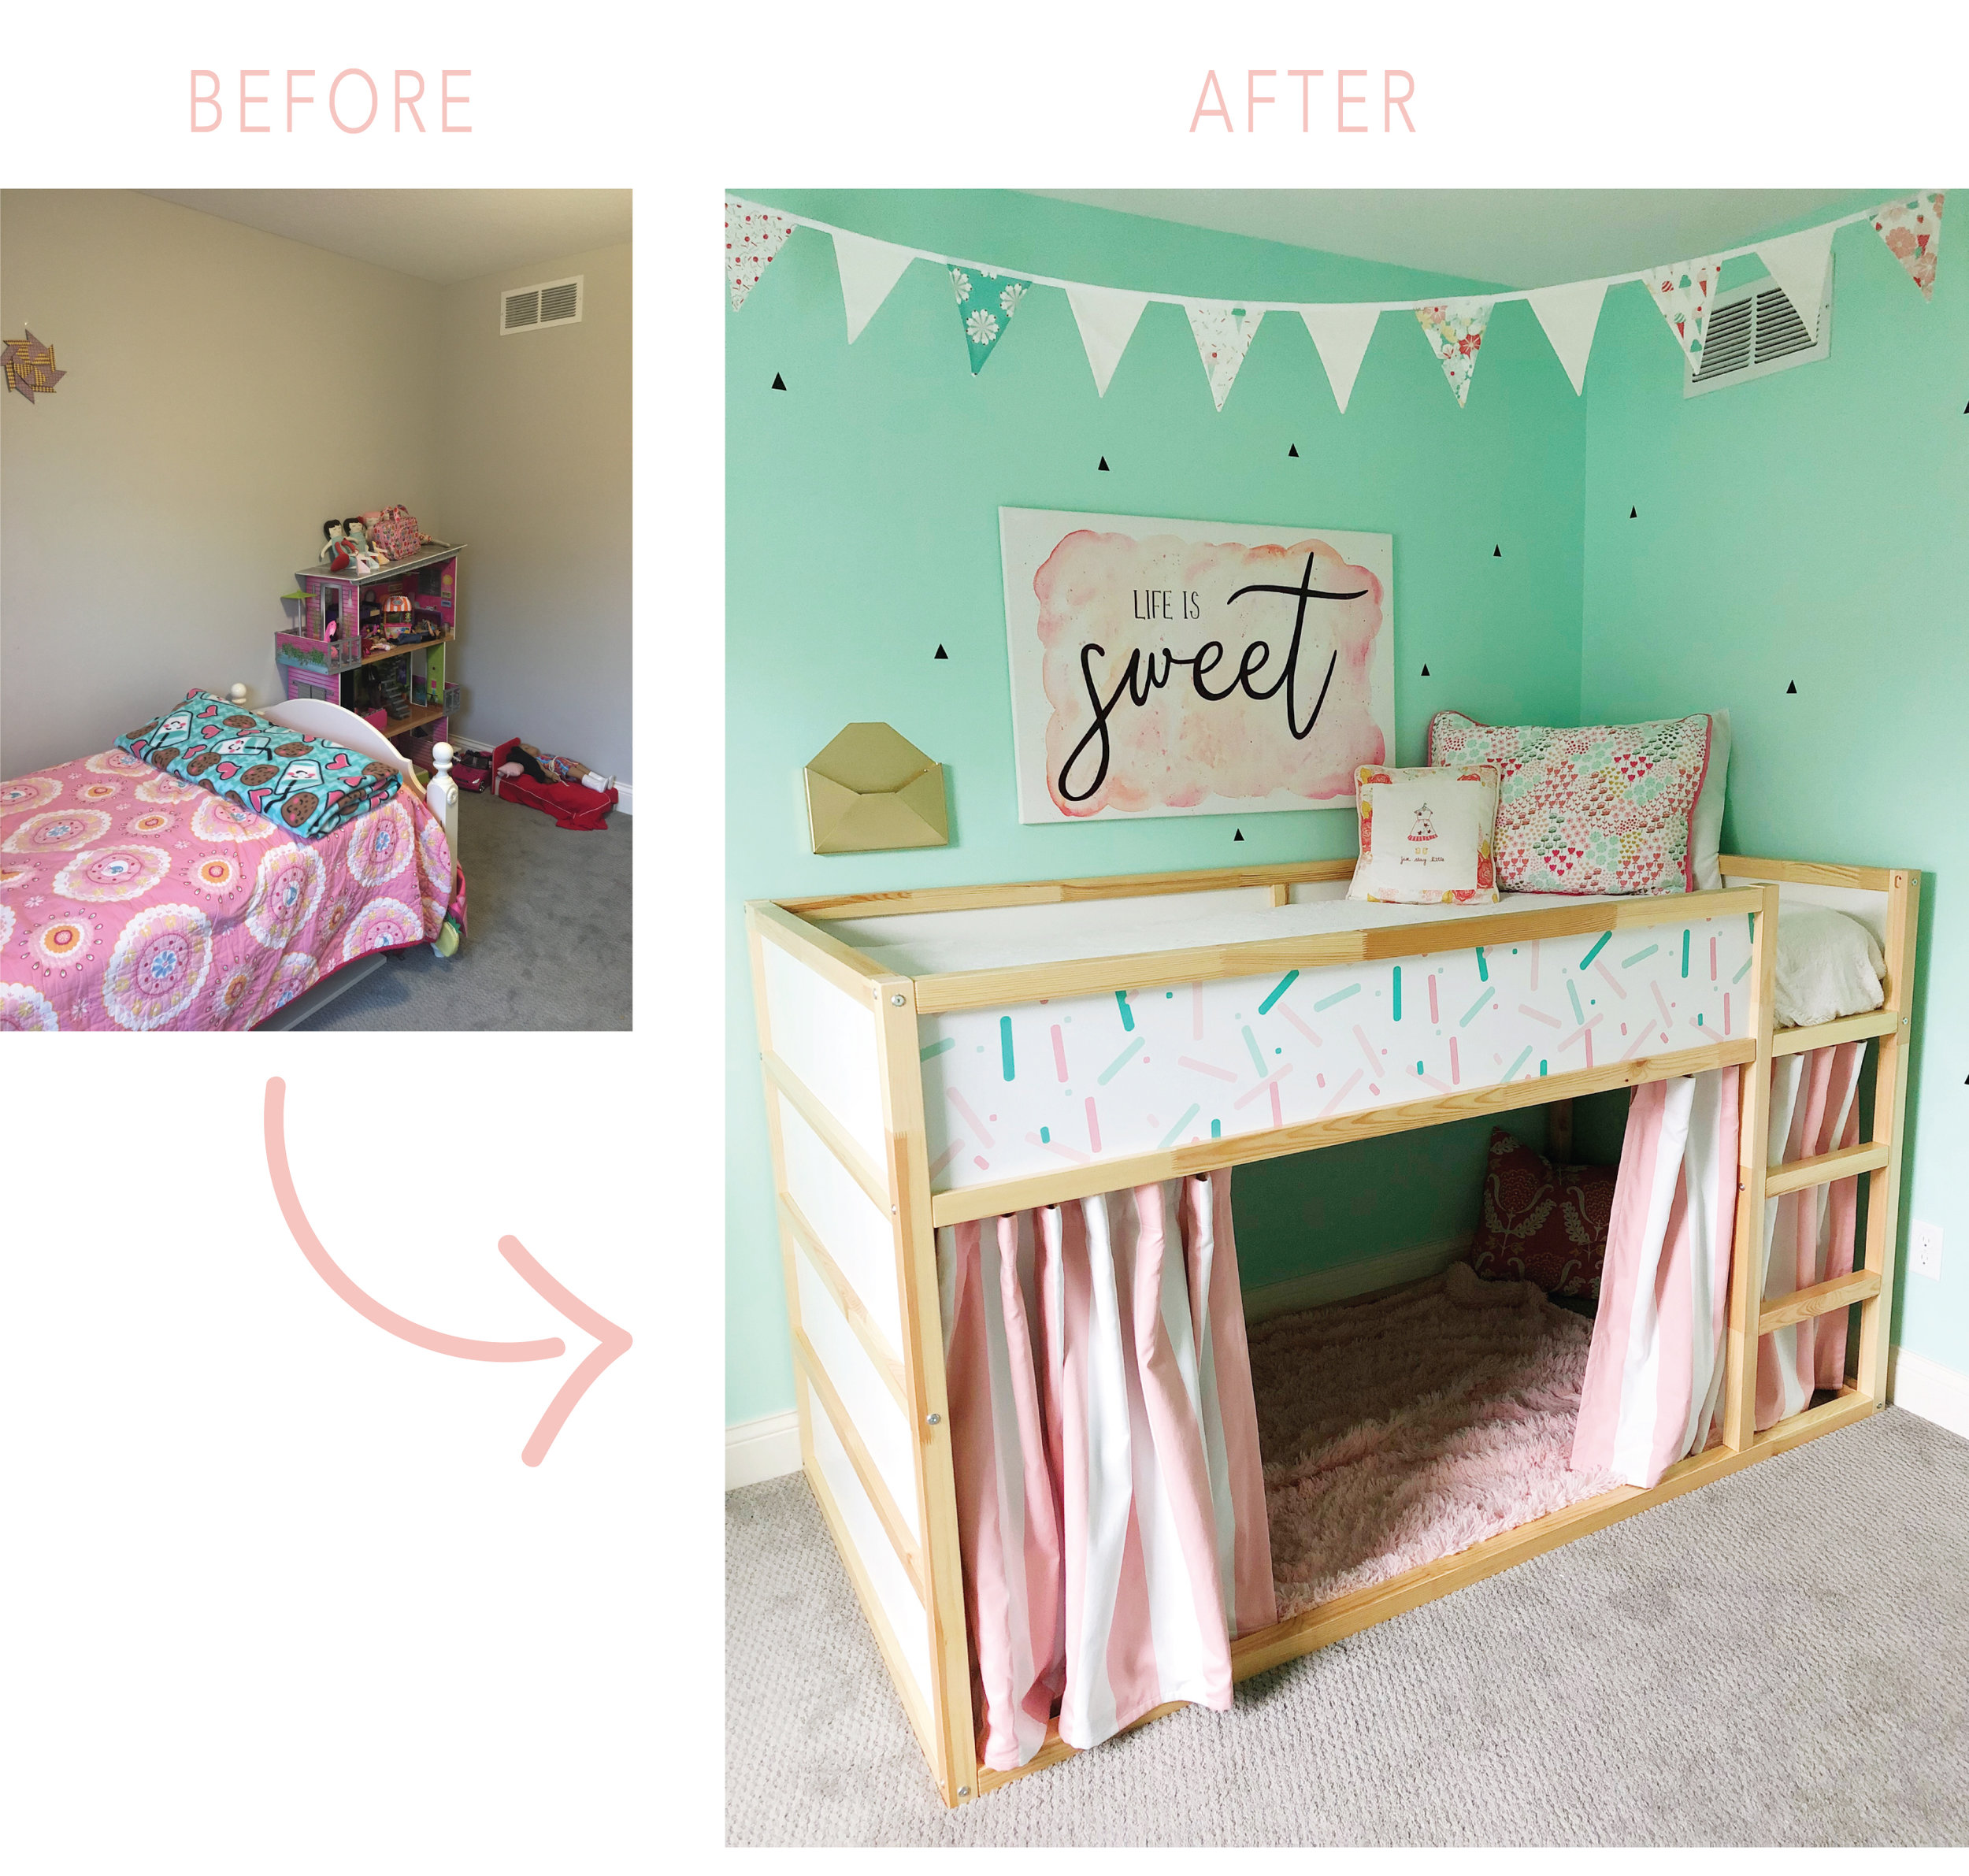 Ice Cream Themed bedroom before and after. Girls bedroom Reveal.